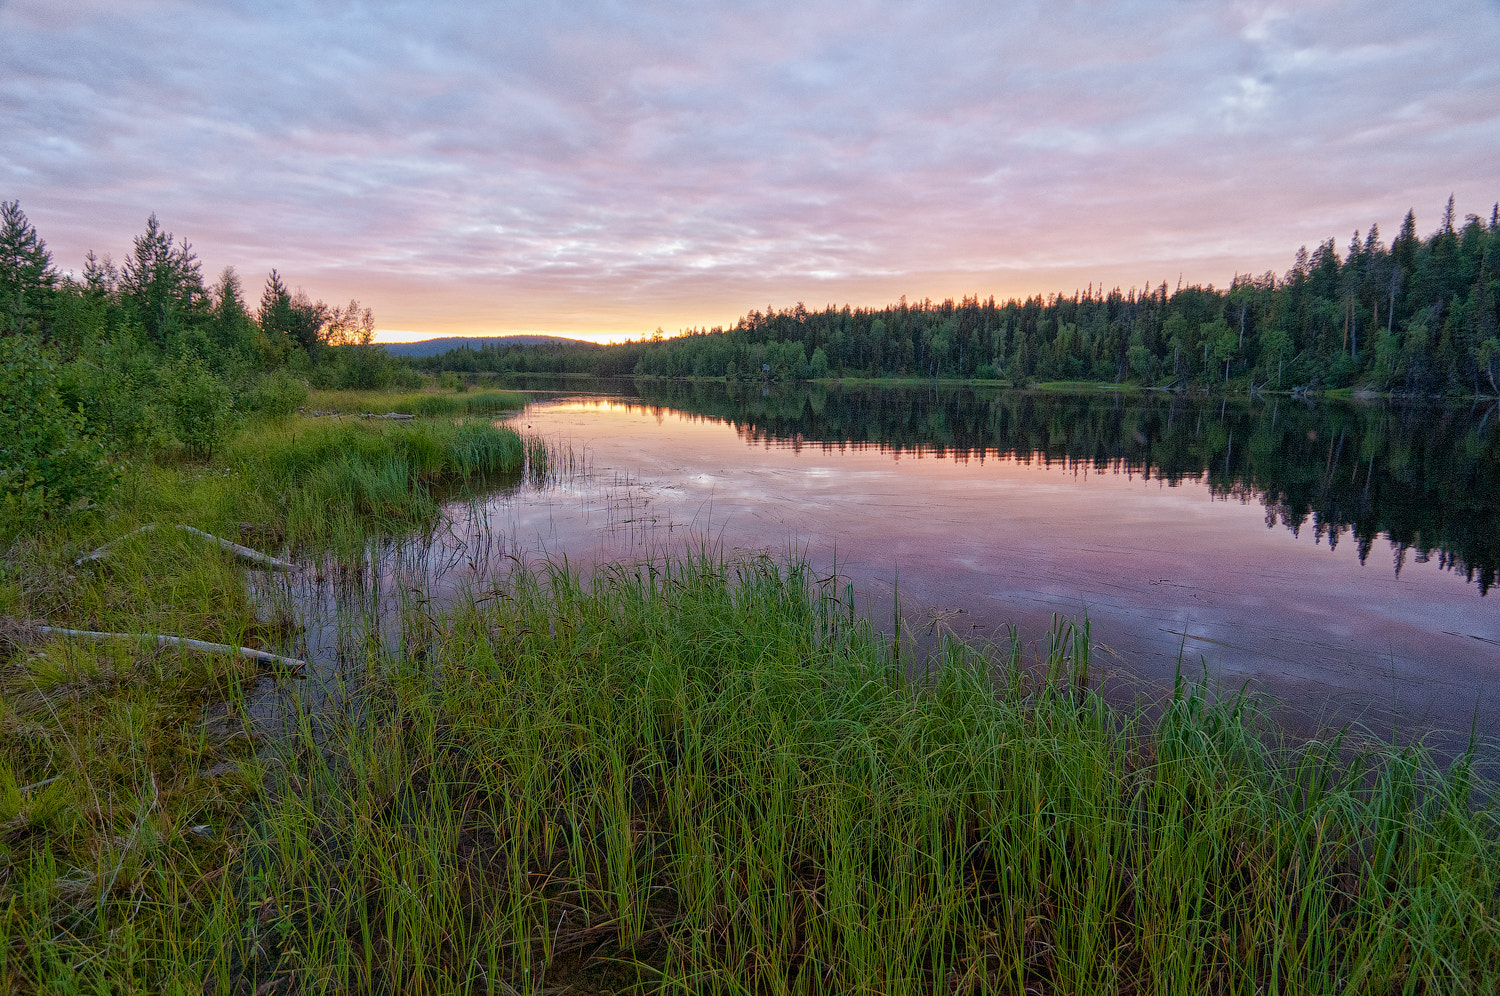 Photograph Karelian sunset by Alexei Zaripov on 500px